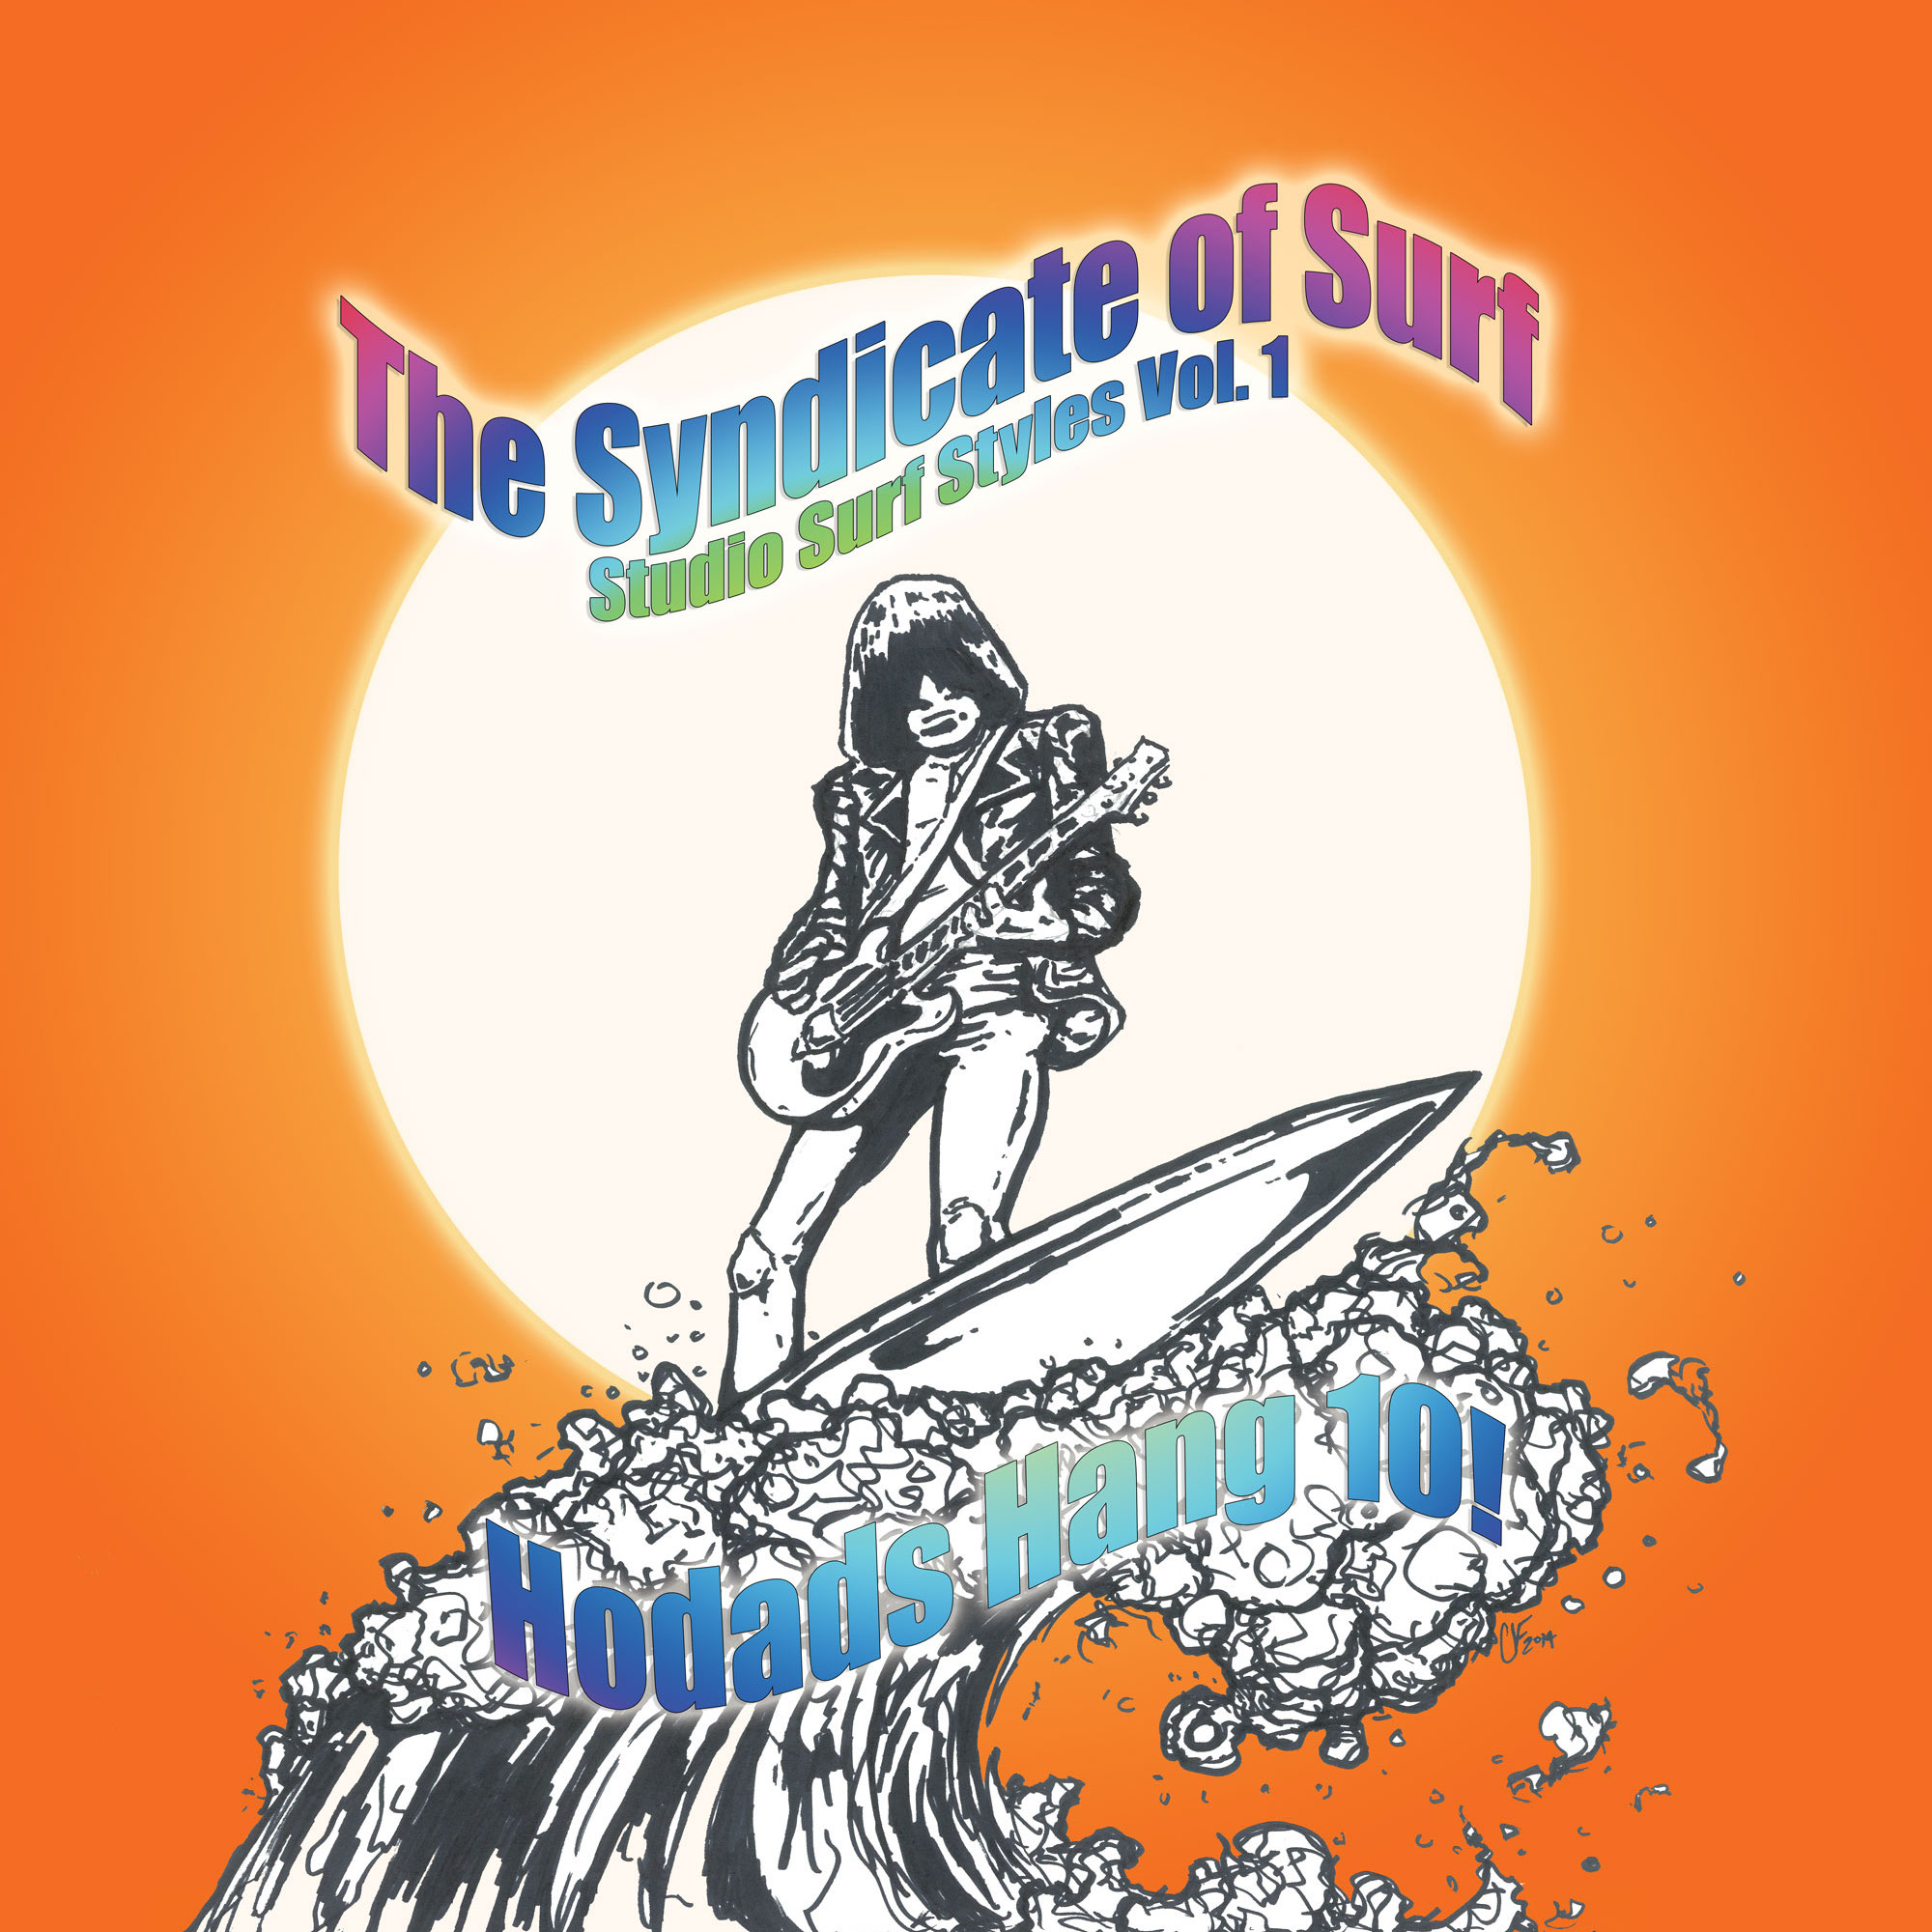 The Syndicate of Surf